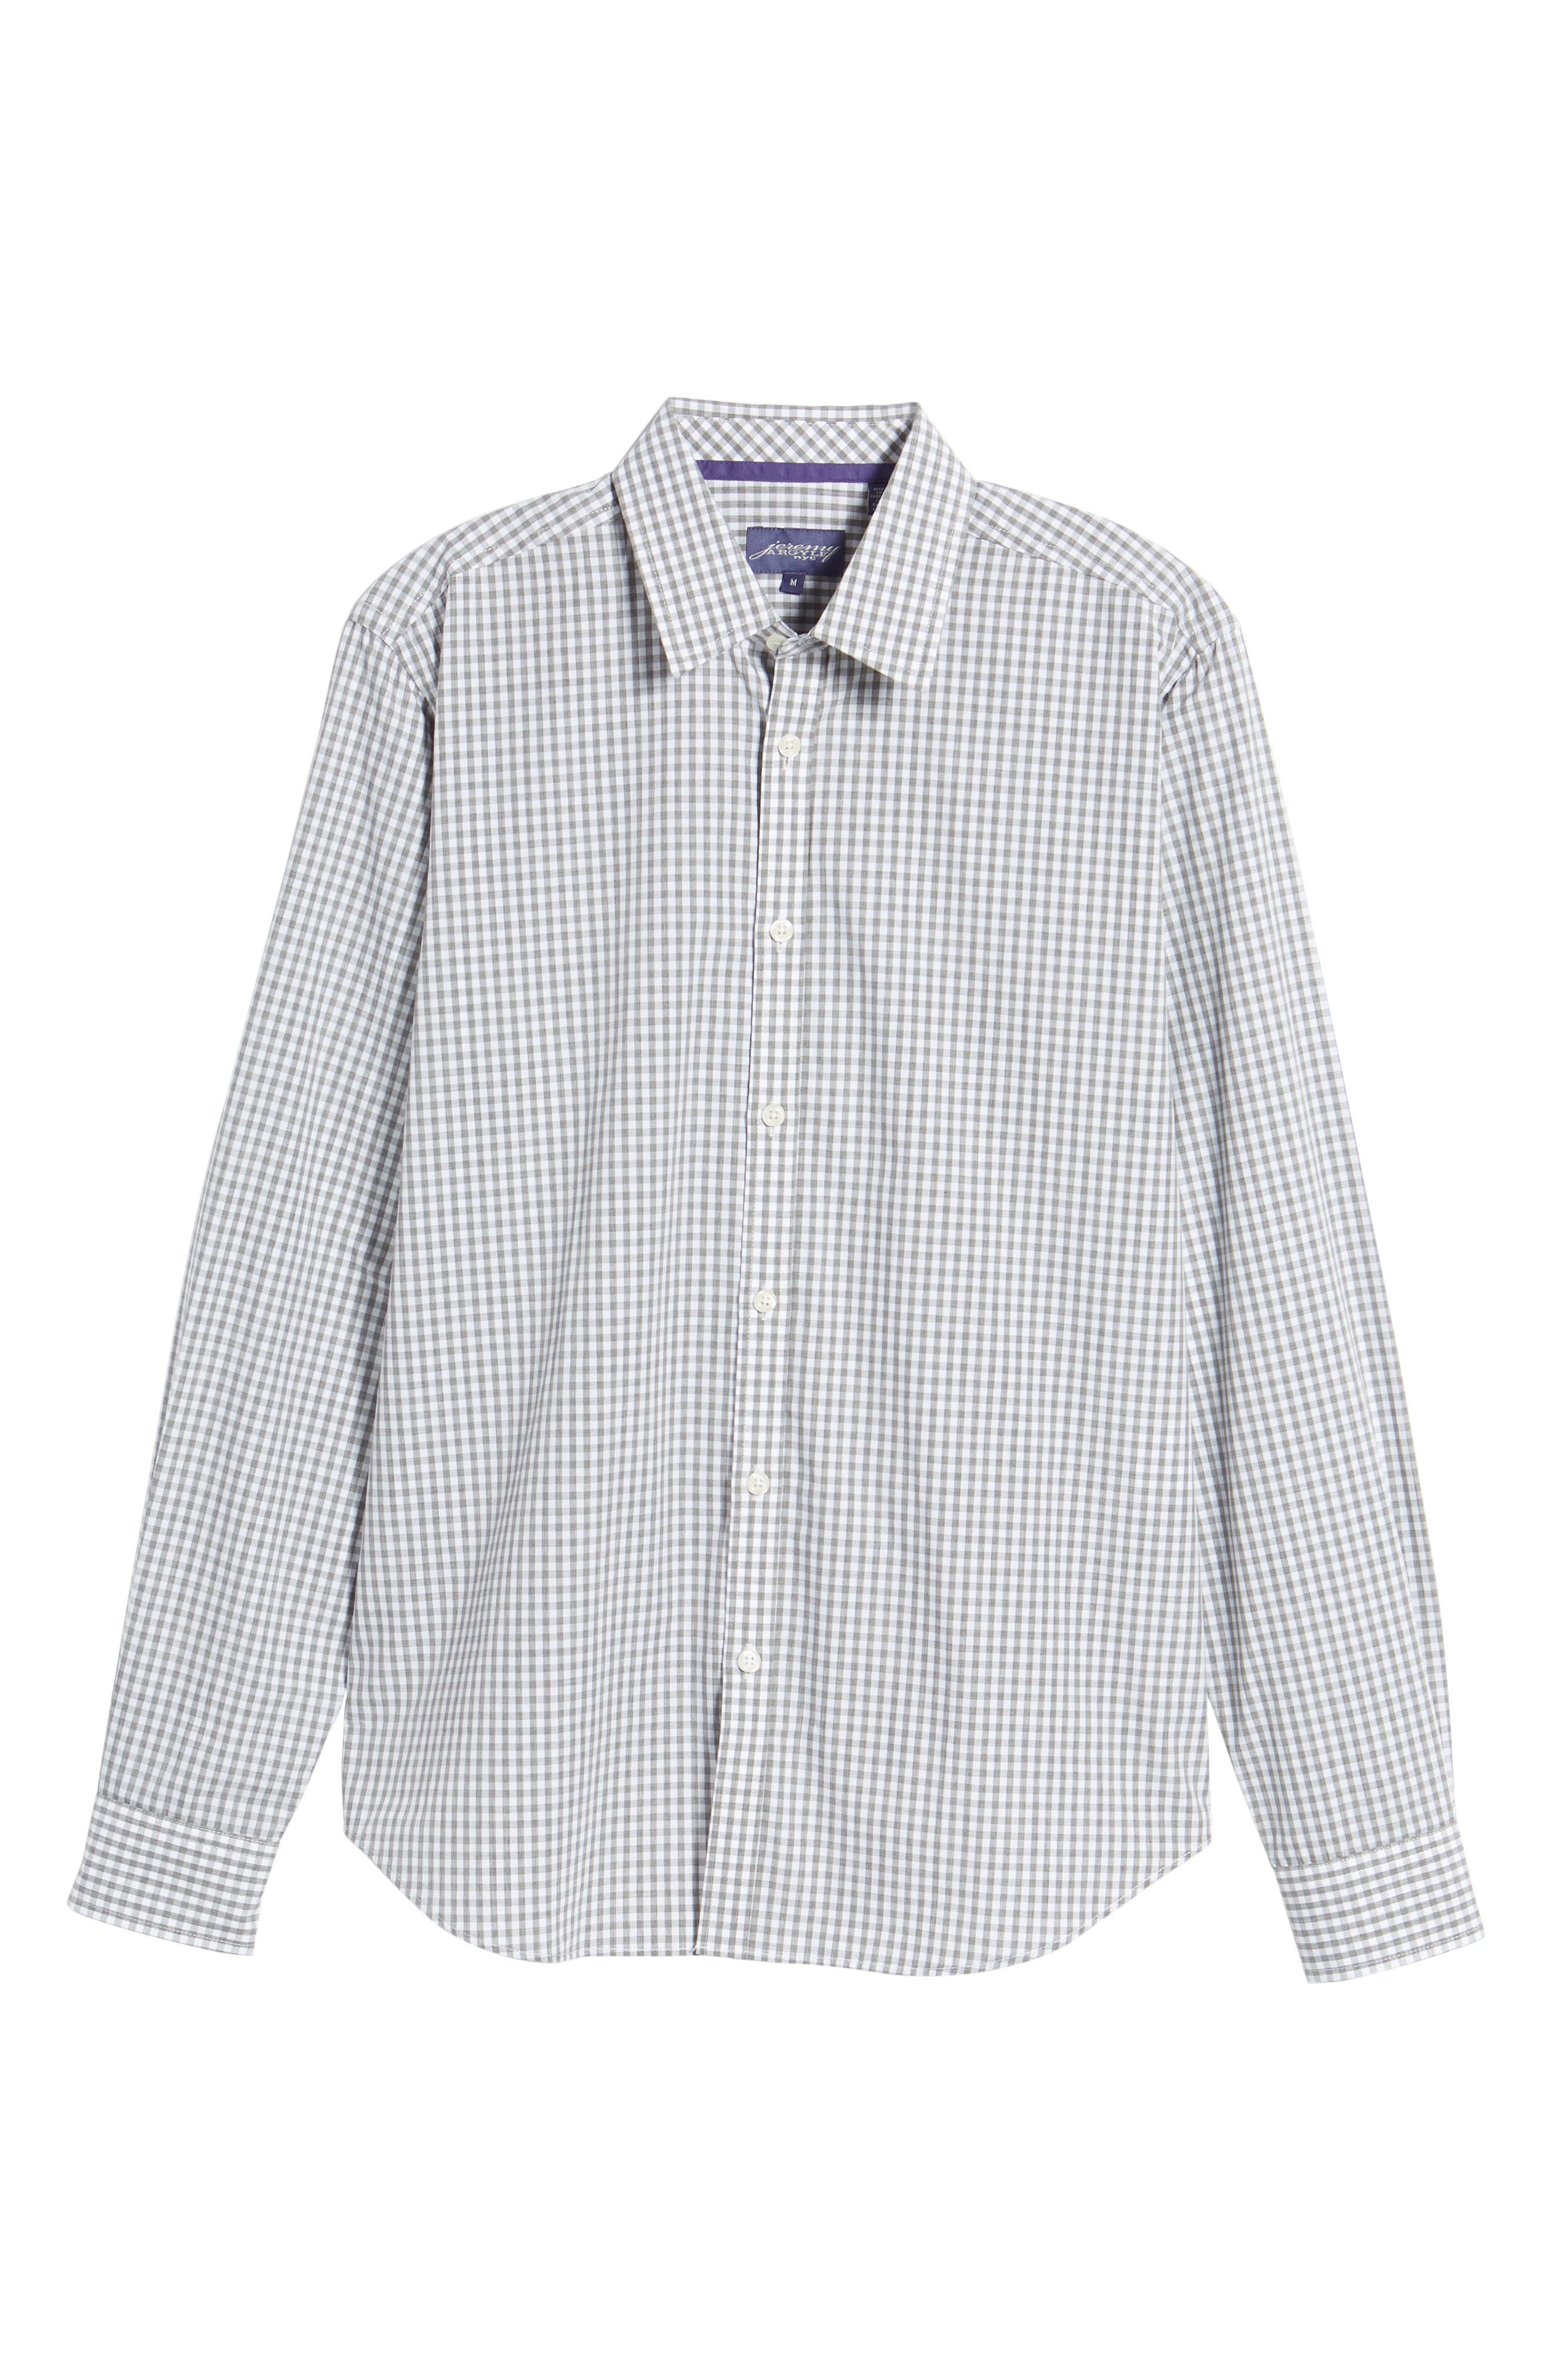 Fitted Check Sport Shirt,                             Alternate thumbnail 6, color,                             034